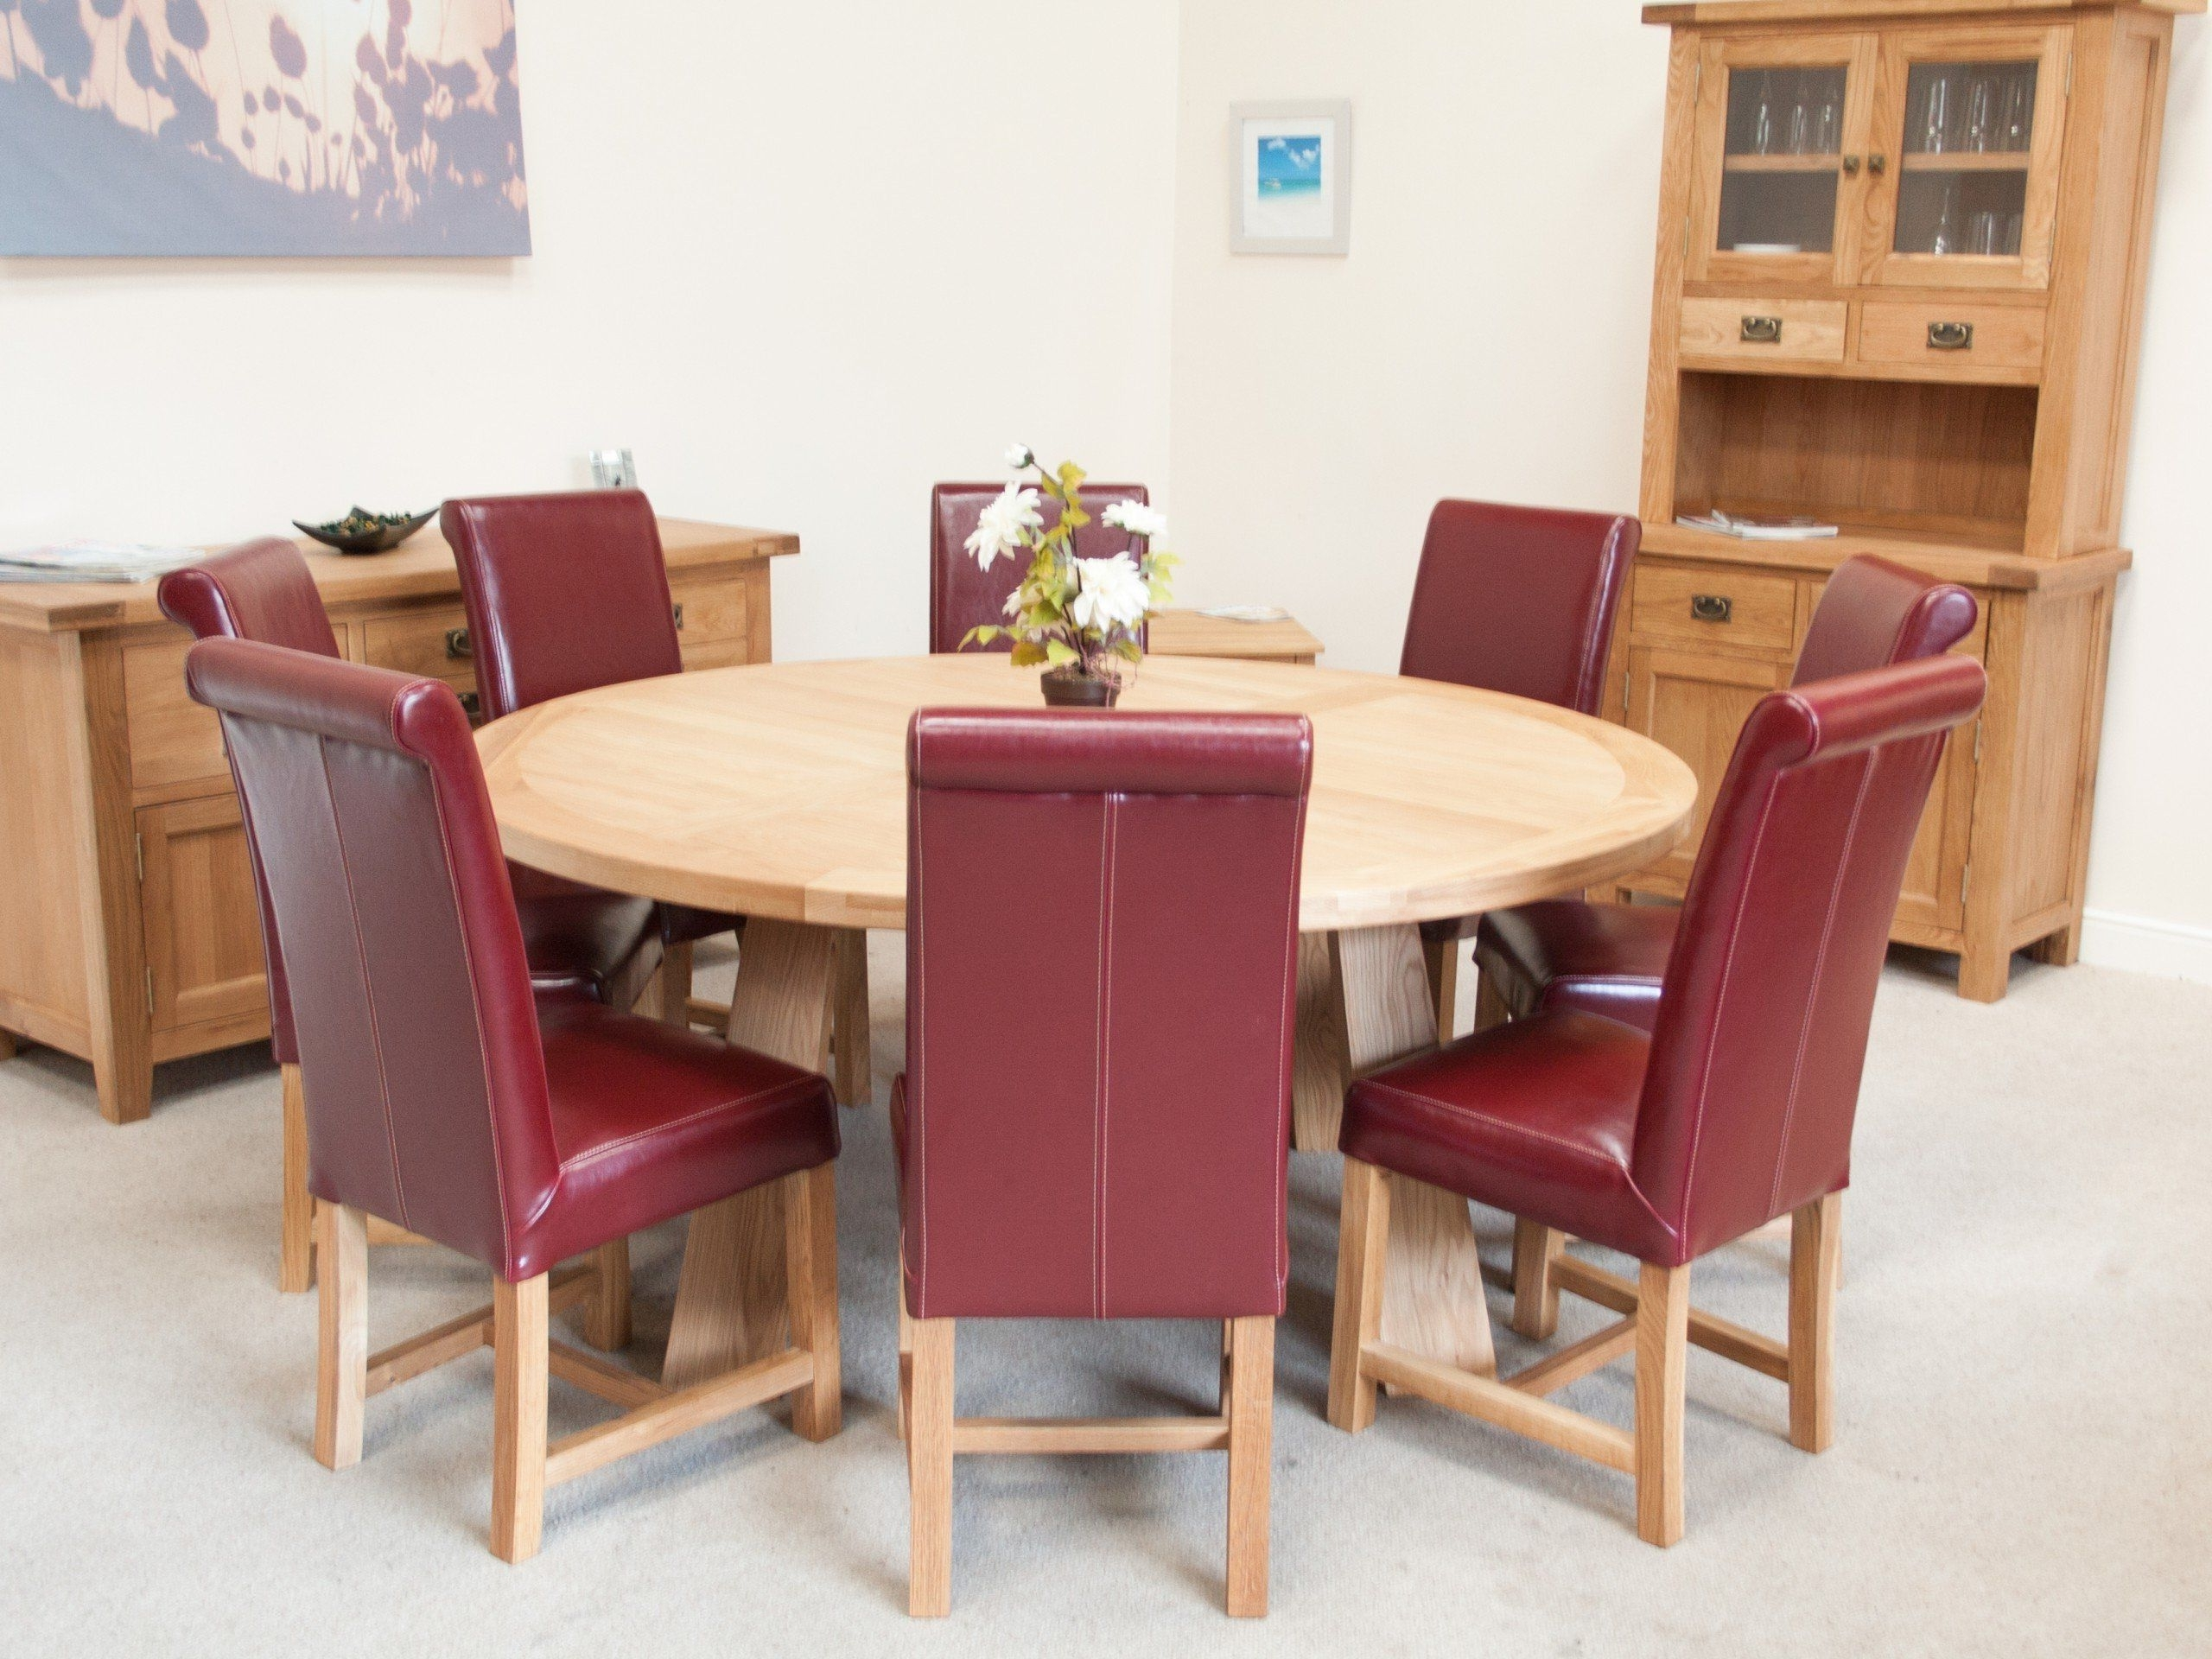 Well Known Round 6 Seater Dining Tables Intended For Large Round 6 Seater Oak Dining Room Table – Top Furniture – Need An (View 25 of 25)